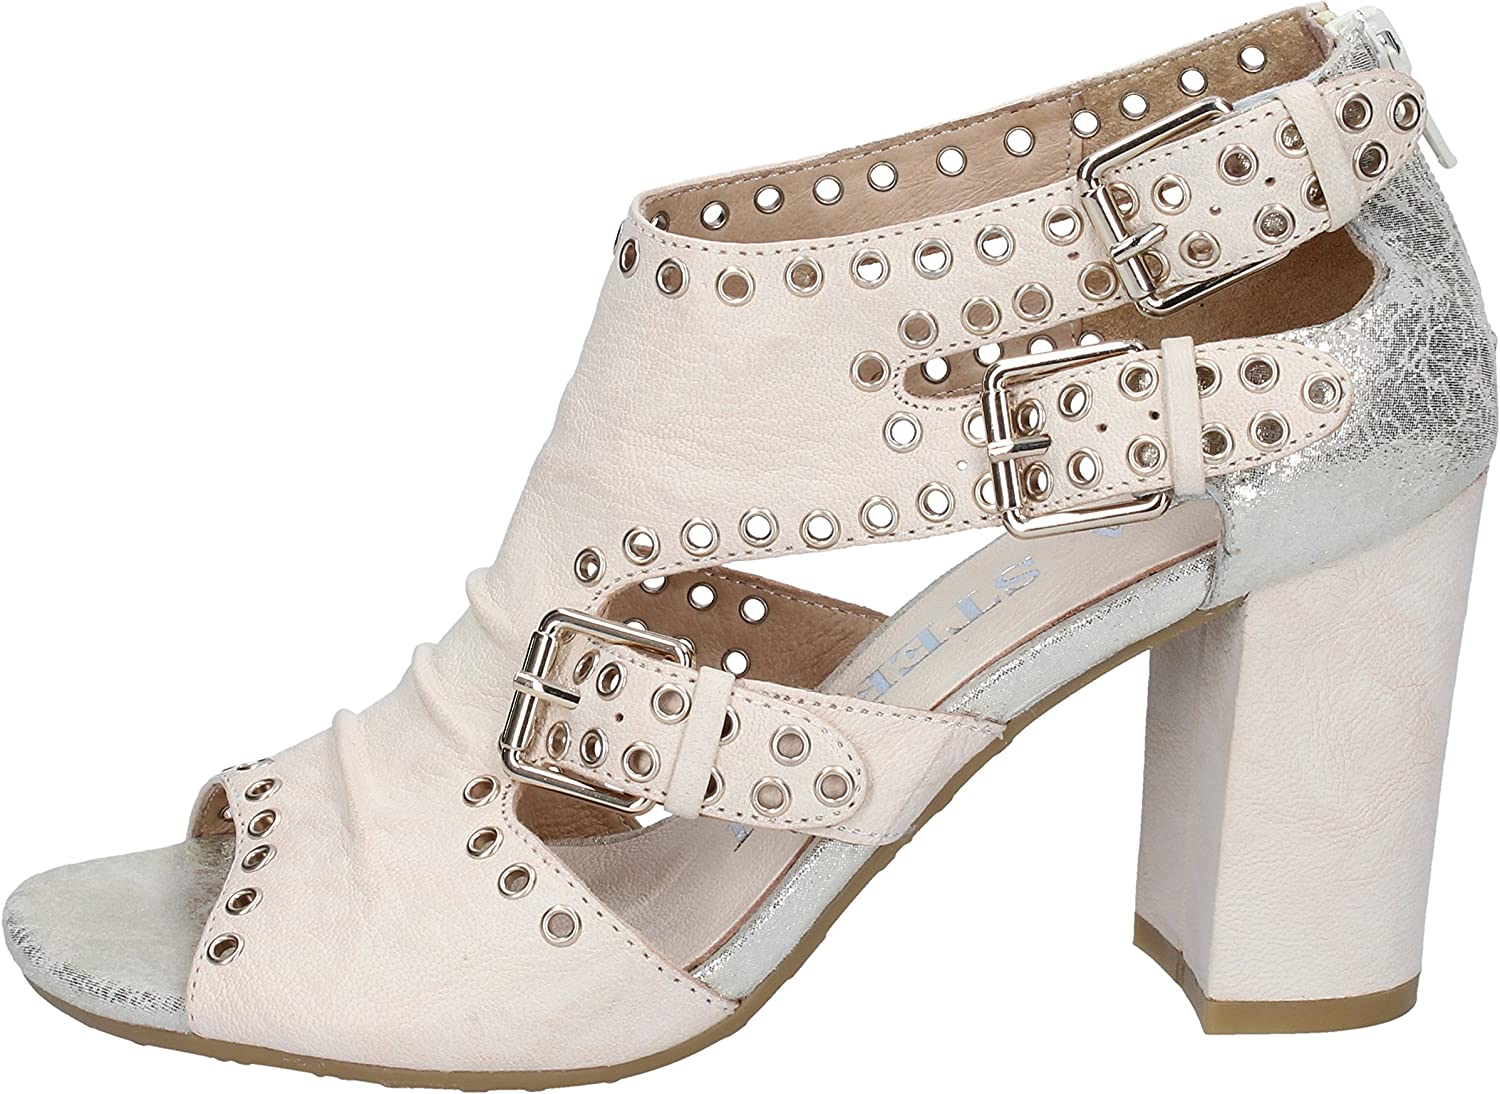 LUCA STEFANI Sandals Womens Leather Beige